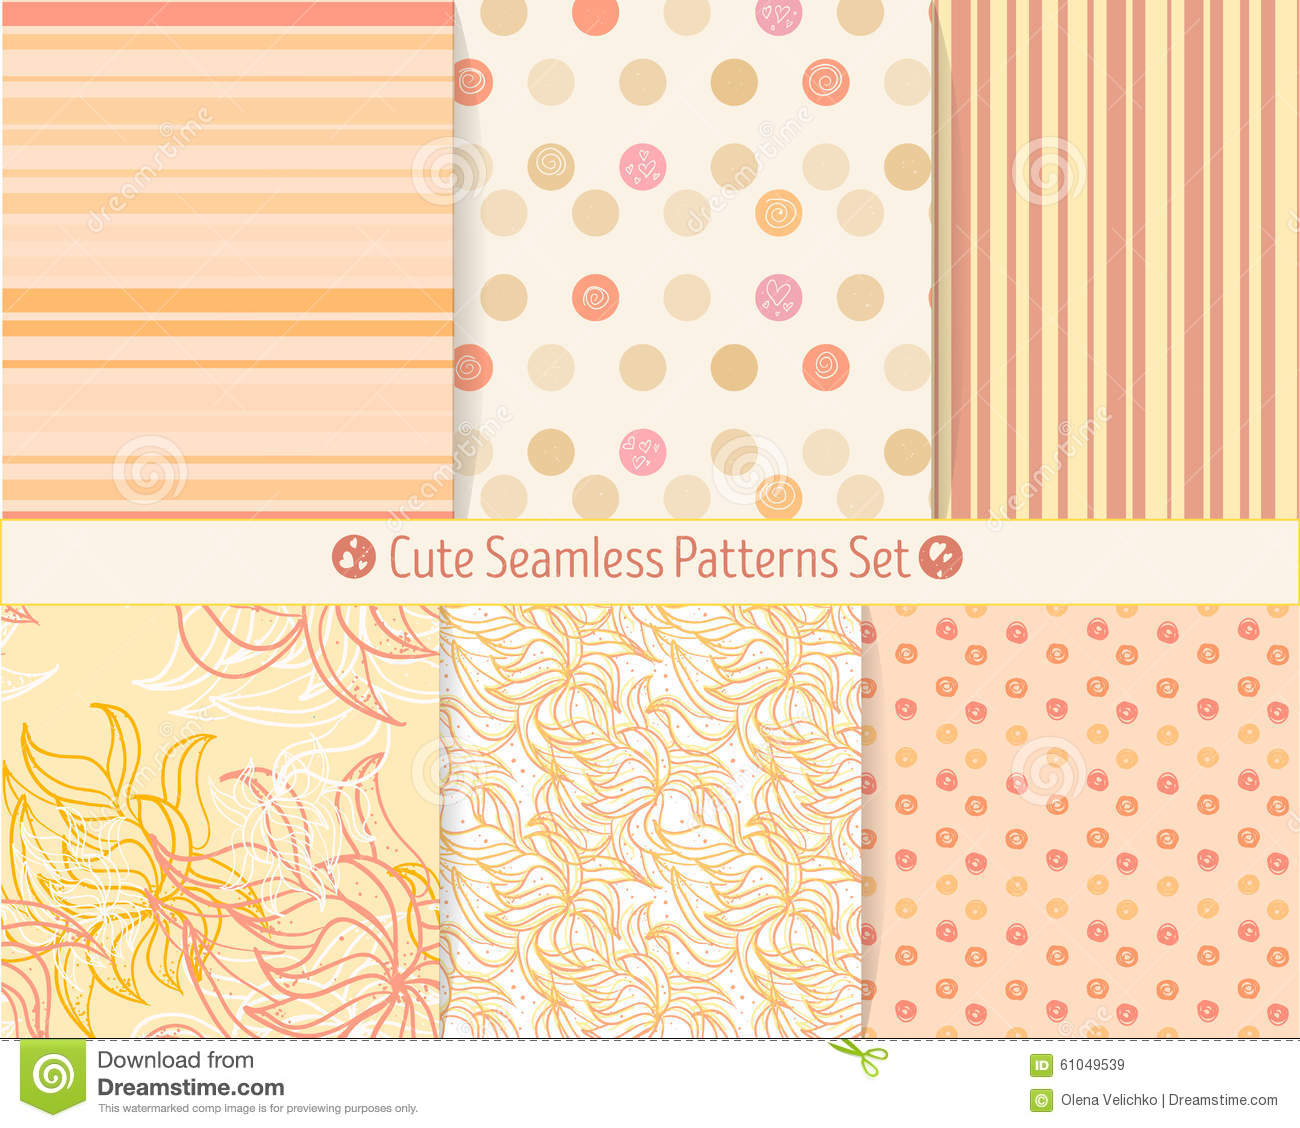 Cute hand-drawn seamless patterns. Endless texture for paper or scrap booking.